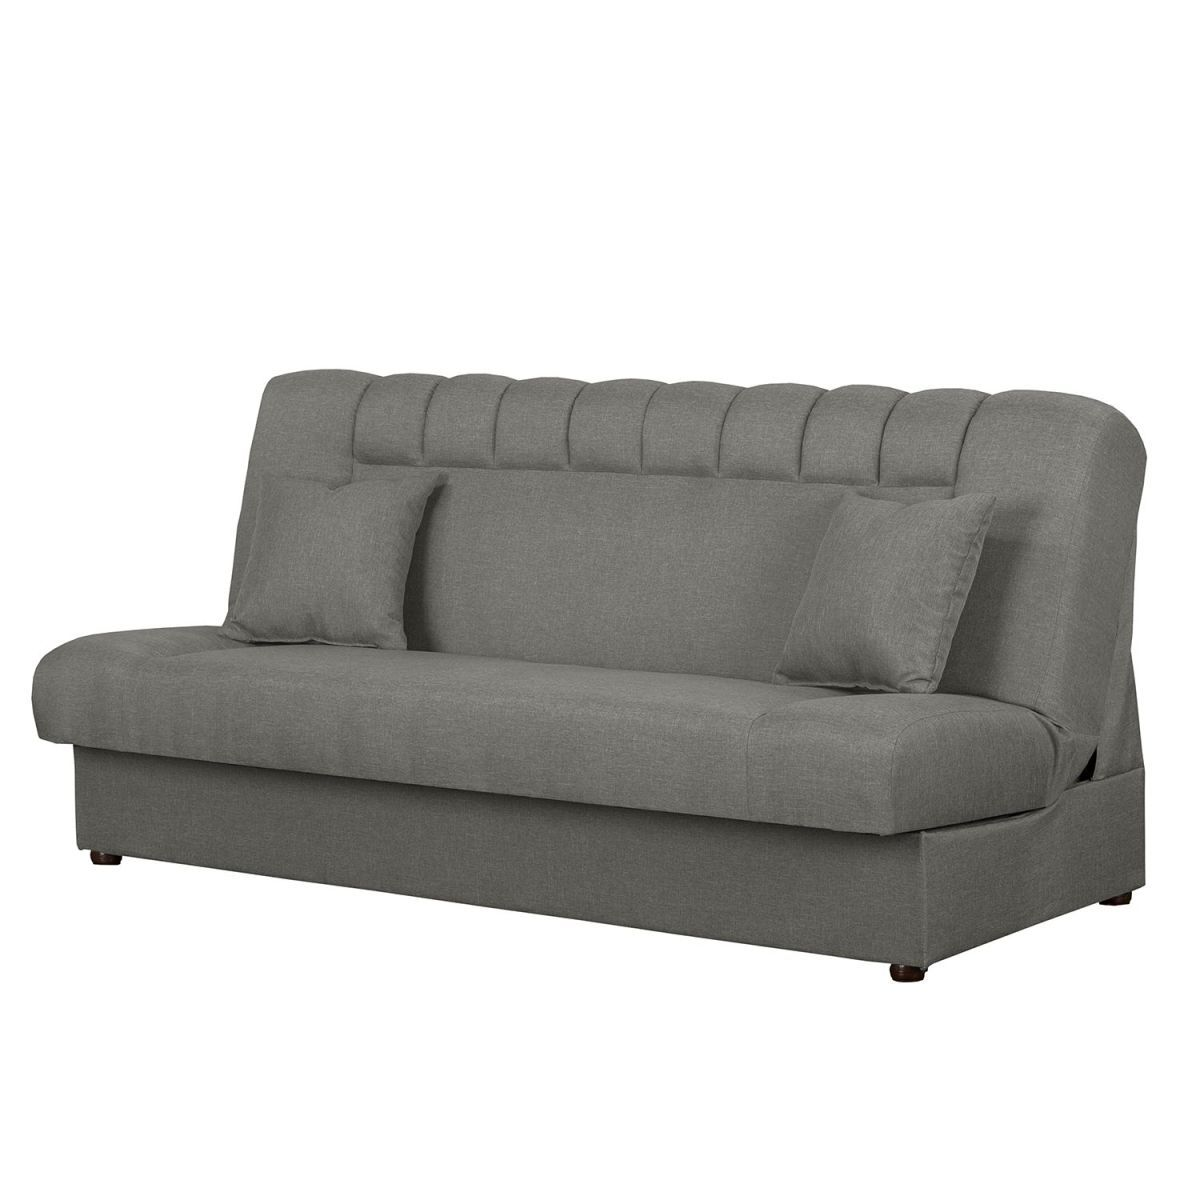 Schlafsofas Online Bestellen Pin By Ladendirekt On Sofas Couches Sofa Furniture Sofa